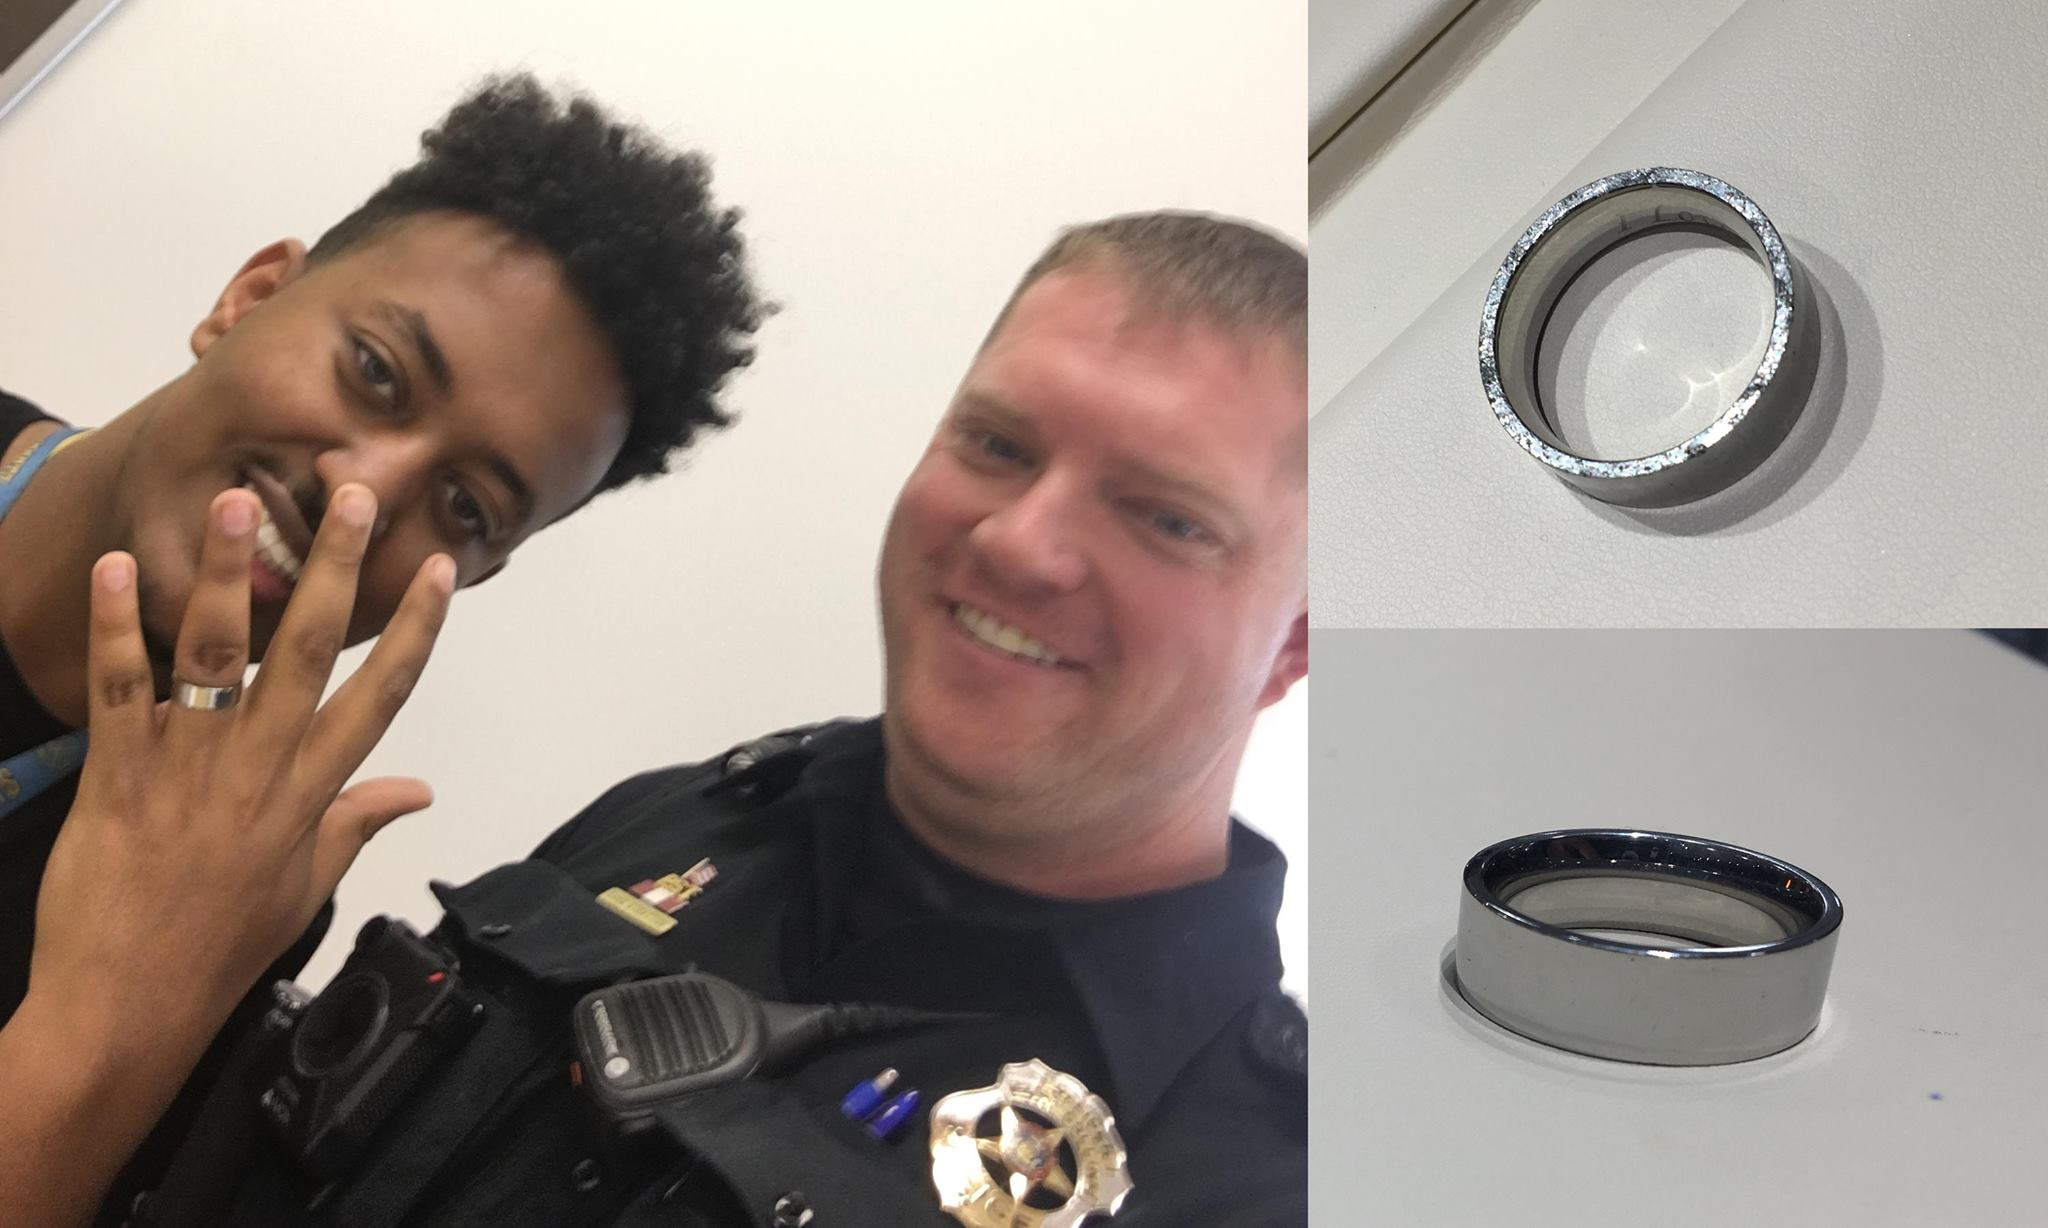 Colorado Officer Finds Wedding Ring, Uses Investigative Skills to Find Owner